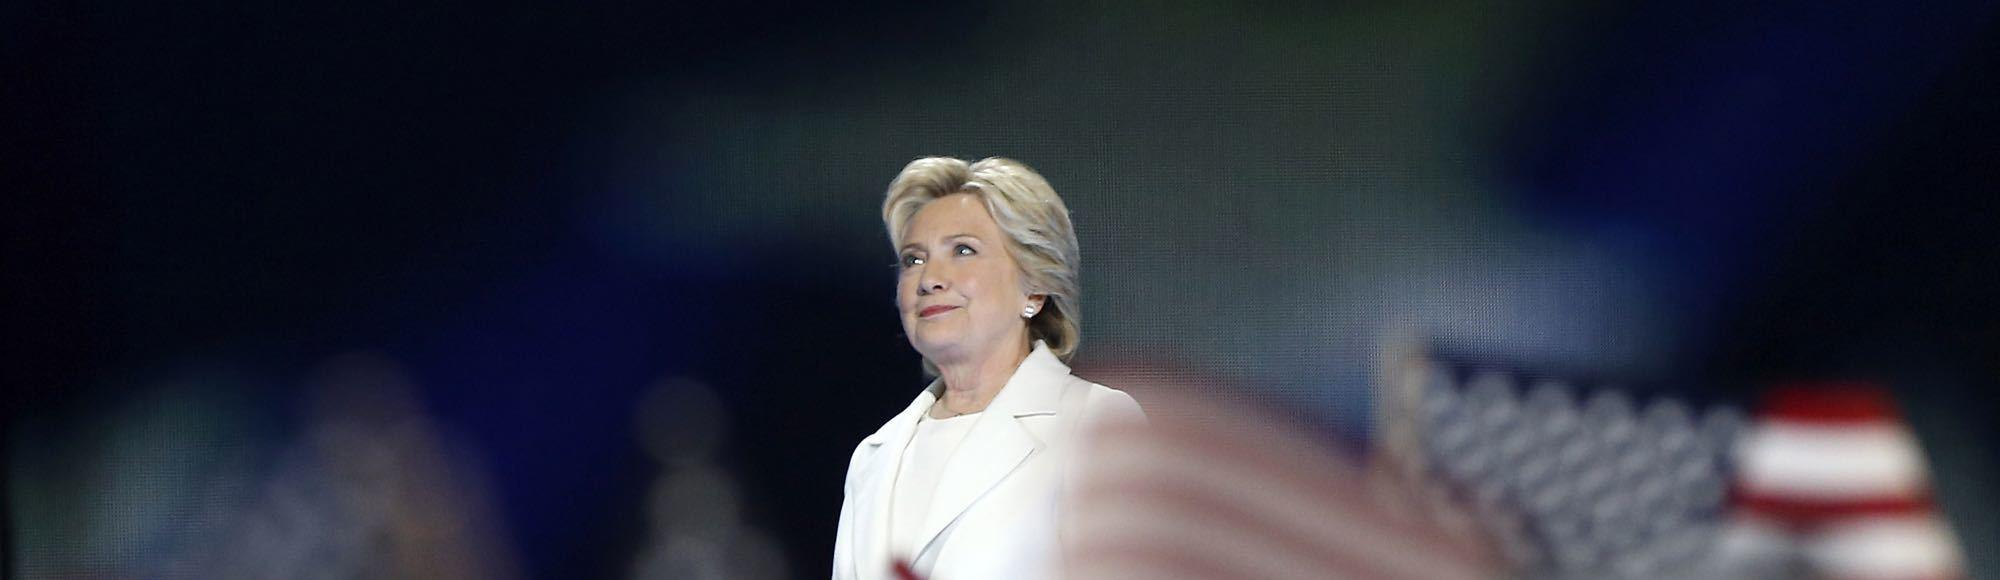 Hillary Clinton is raising millions from hedge funds, thanks to Citizens United